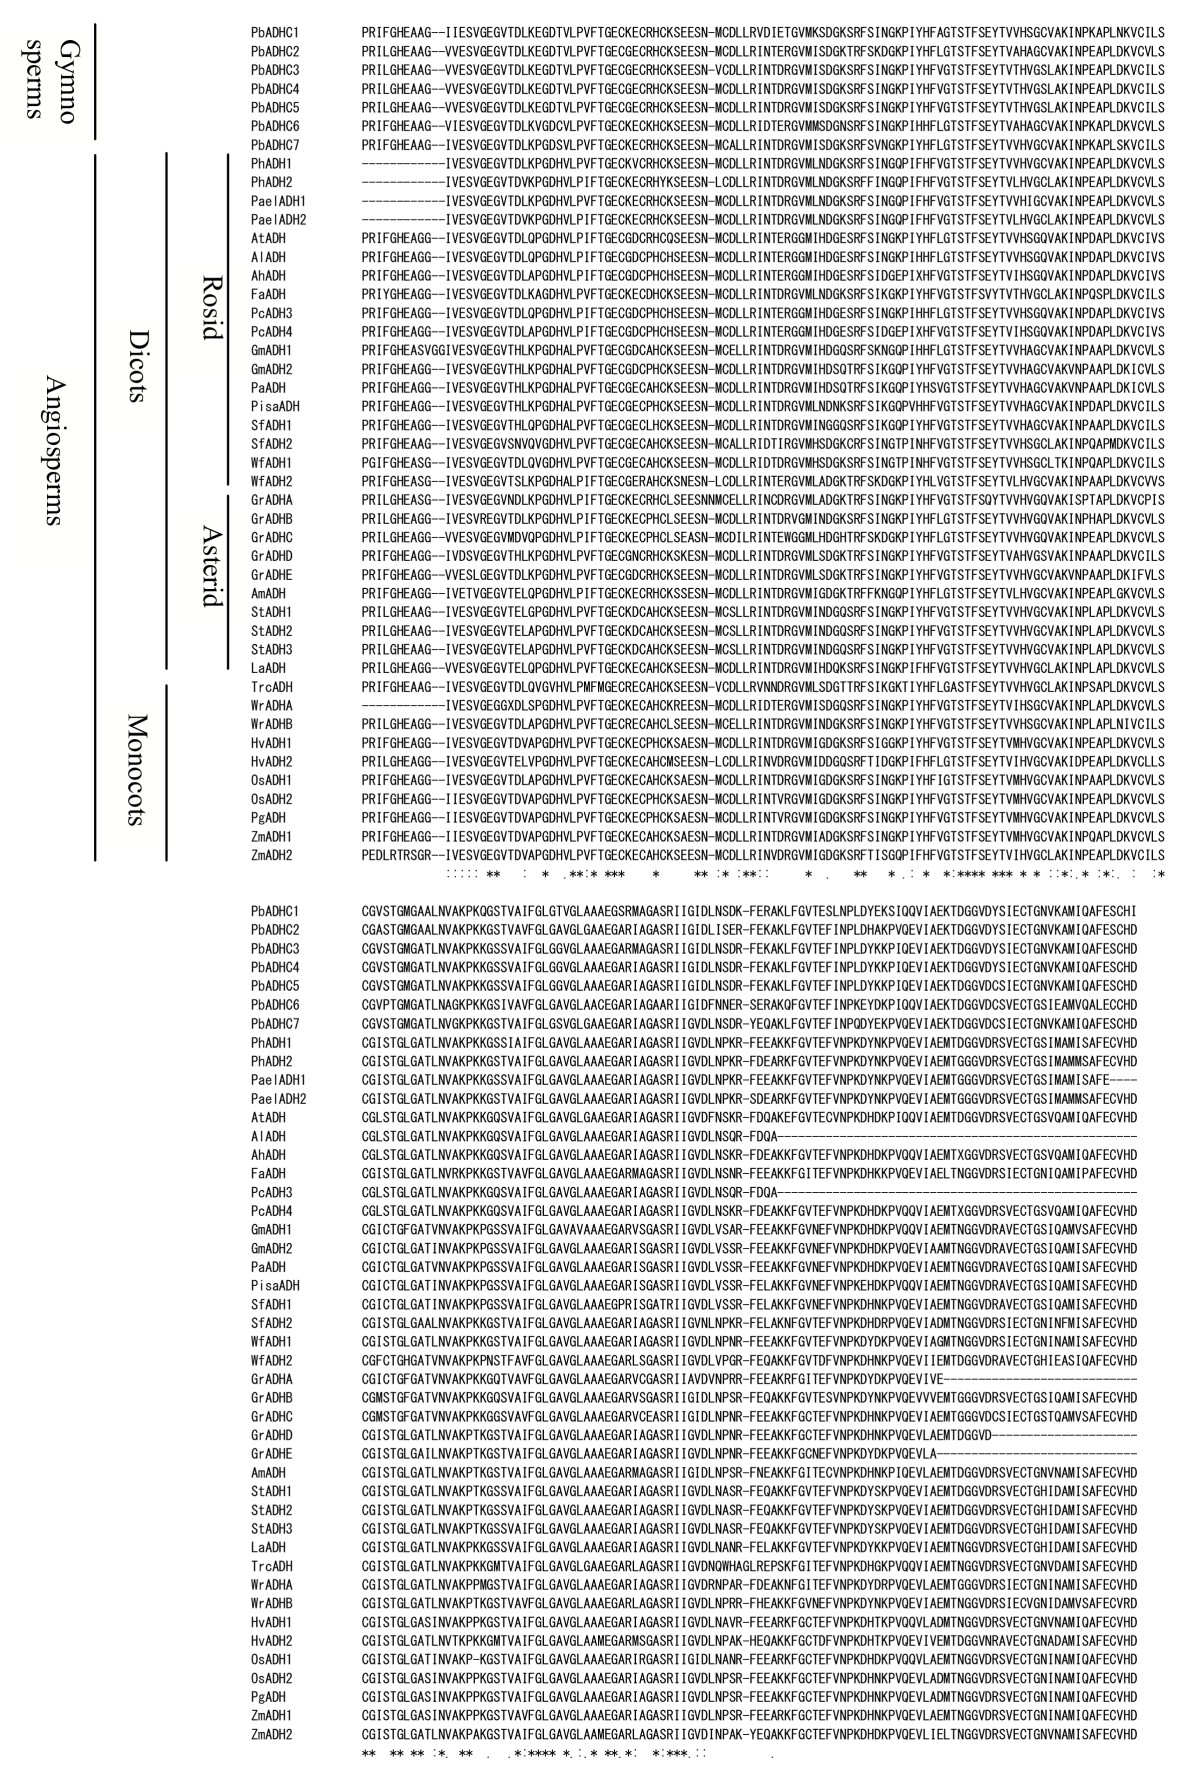 https://static-content.springer.com/image/art%3A10.1186%2F1471-2229-5-6/MediaObjects/12870_2004_Article_51_Fig1_HTML.jpg